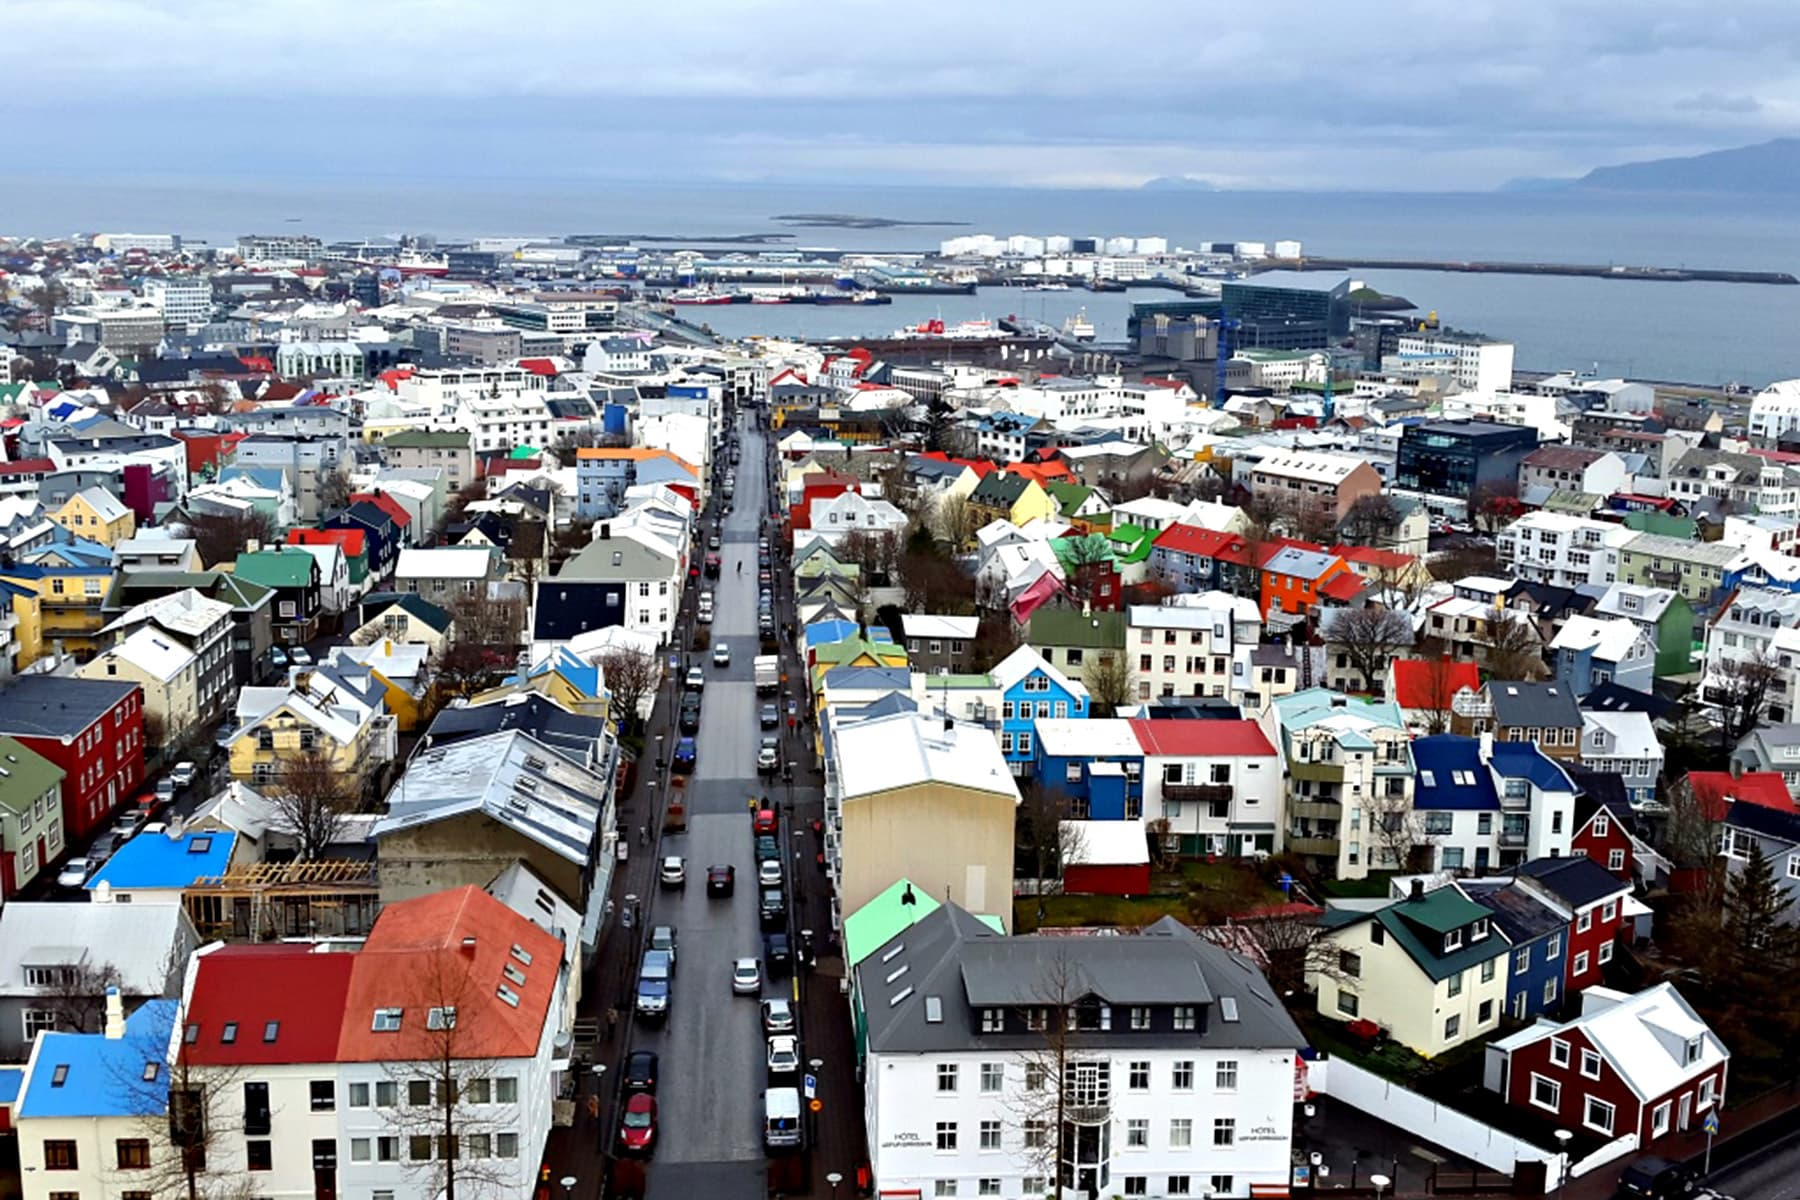 View of Reykjavik from the Hallgrimskirkja Cathedral. Colourful rooftops dot the picturesque city and can be spotted from various locations given the hilly terrain.